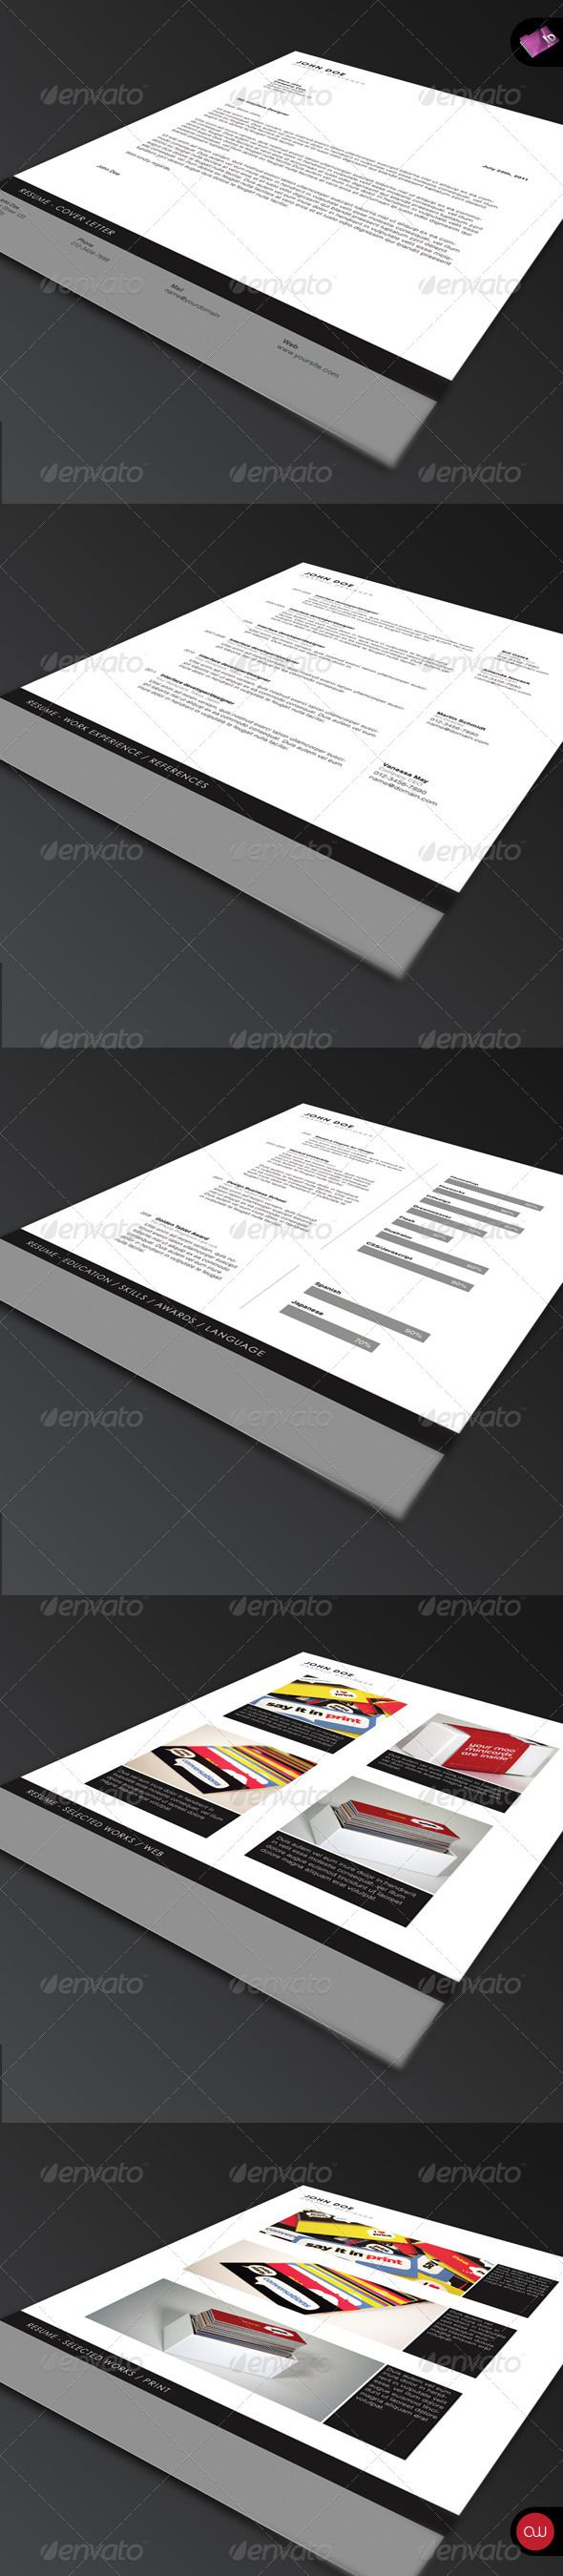 84 best print templates images on pinterest print templates buy resume set by isoarts on graphicriver modern and elegant resume based on the minimal series the package comes with 5 pages and a business card reheart Image collections